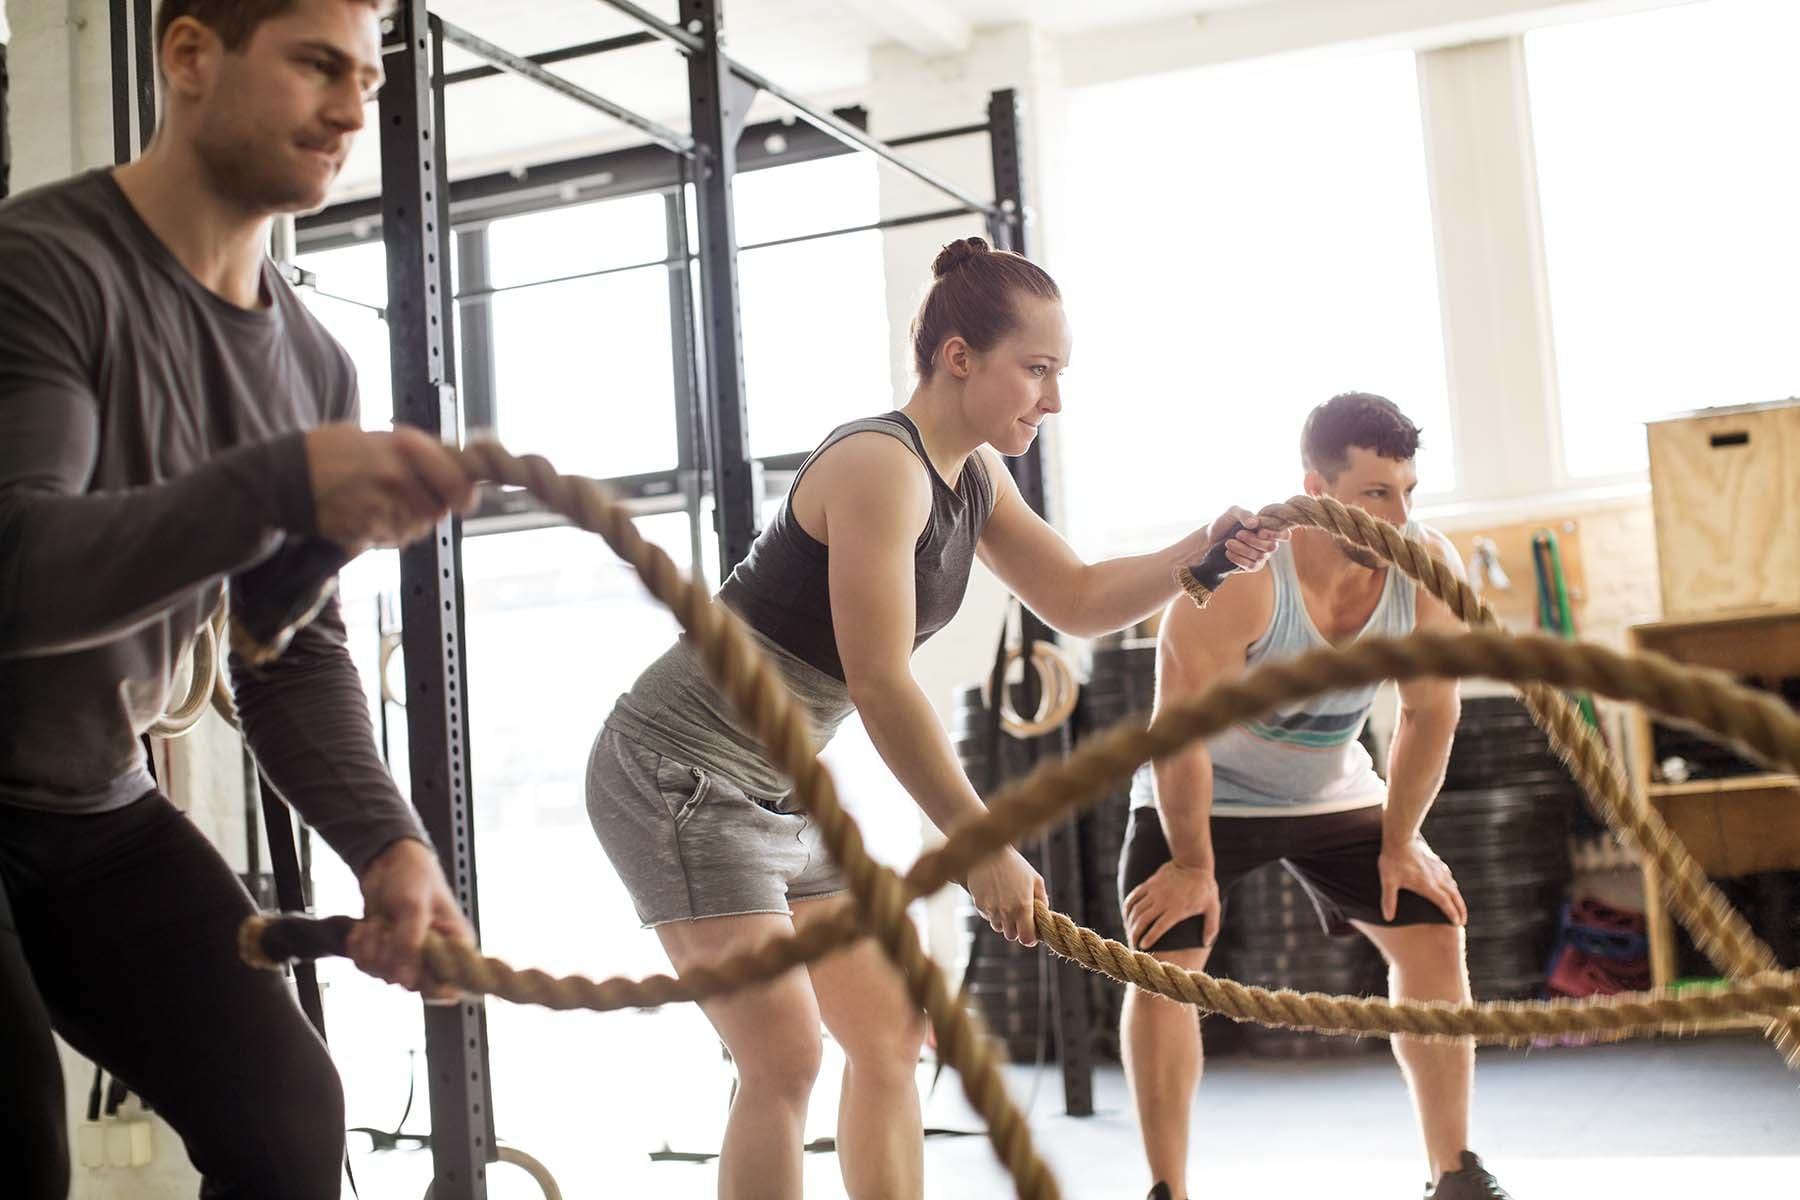 fitness training with ropes